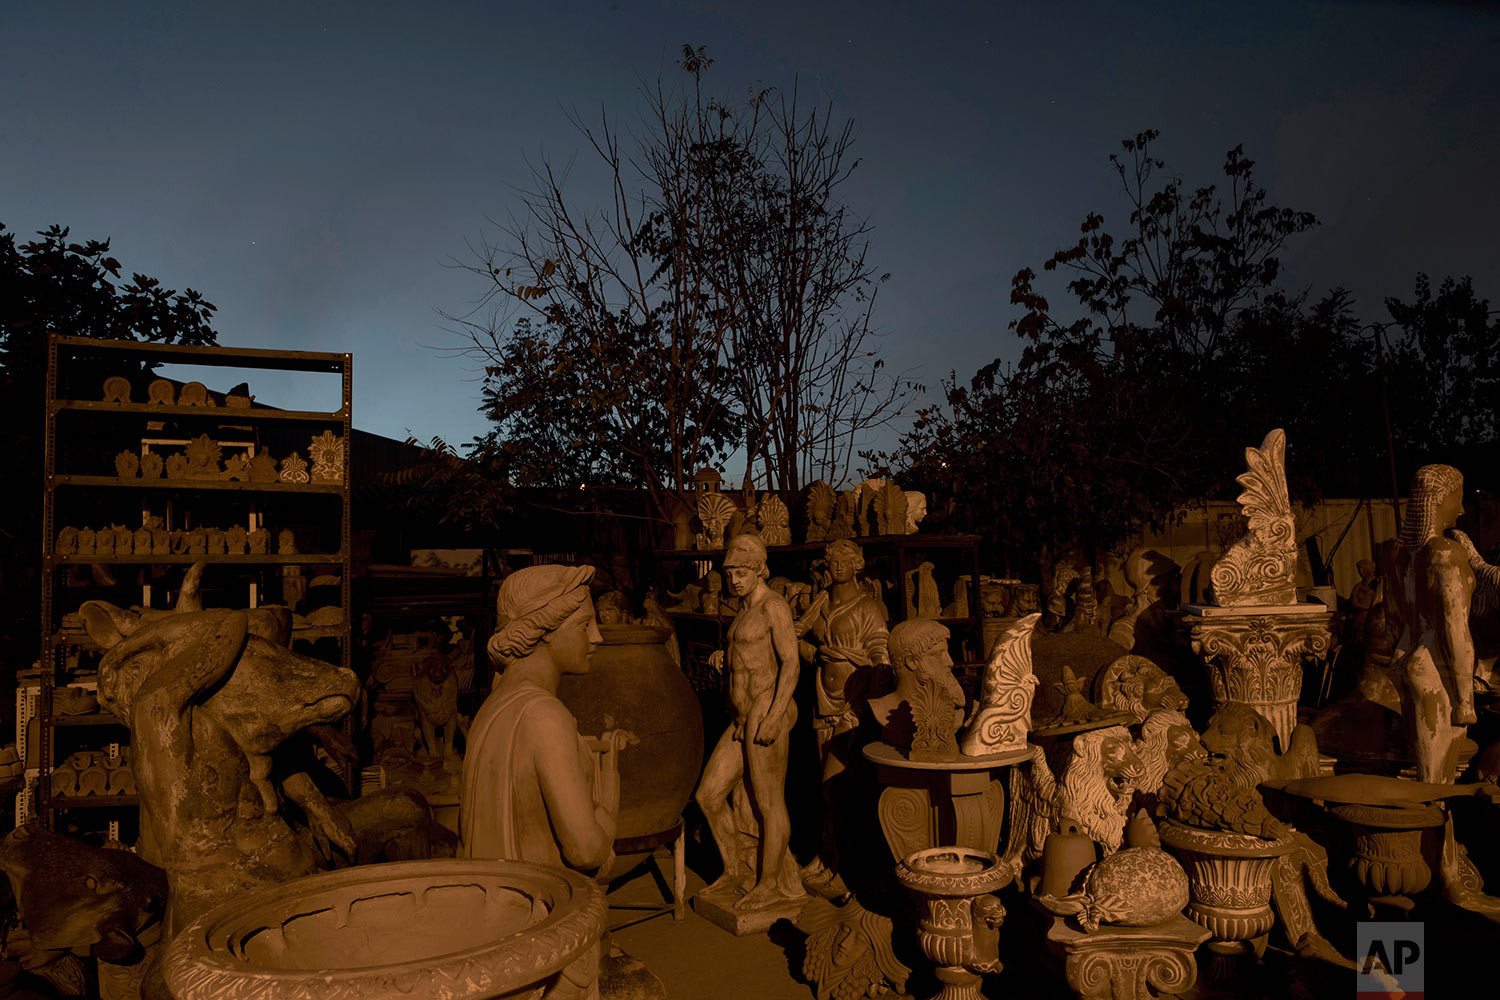 In this Friday, Nov. 20, 2017 photo, the terracotta statue of Ares, the ancient Greek god of war, middle, stands among other statues, busts, antefixes and flowers pots in the yard of Haralambos Goumas' sculpture and ceramic workshop, in the Egaleo suburb of Athens. (AP Photo/Petros Giannakouris)